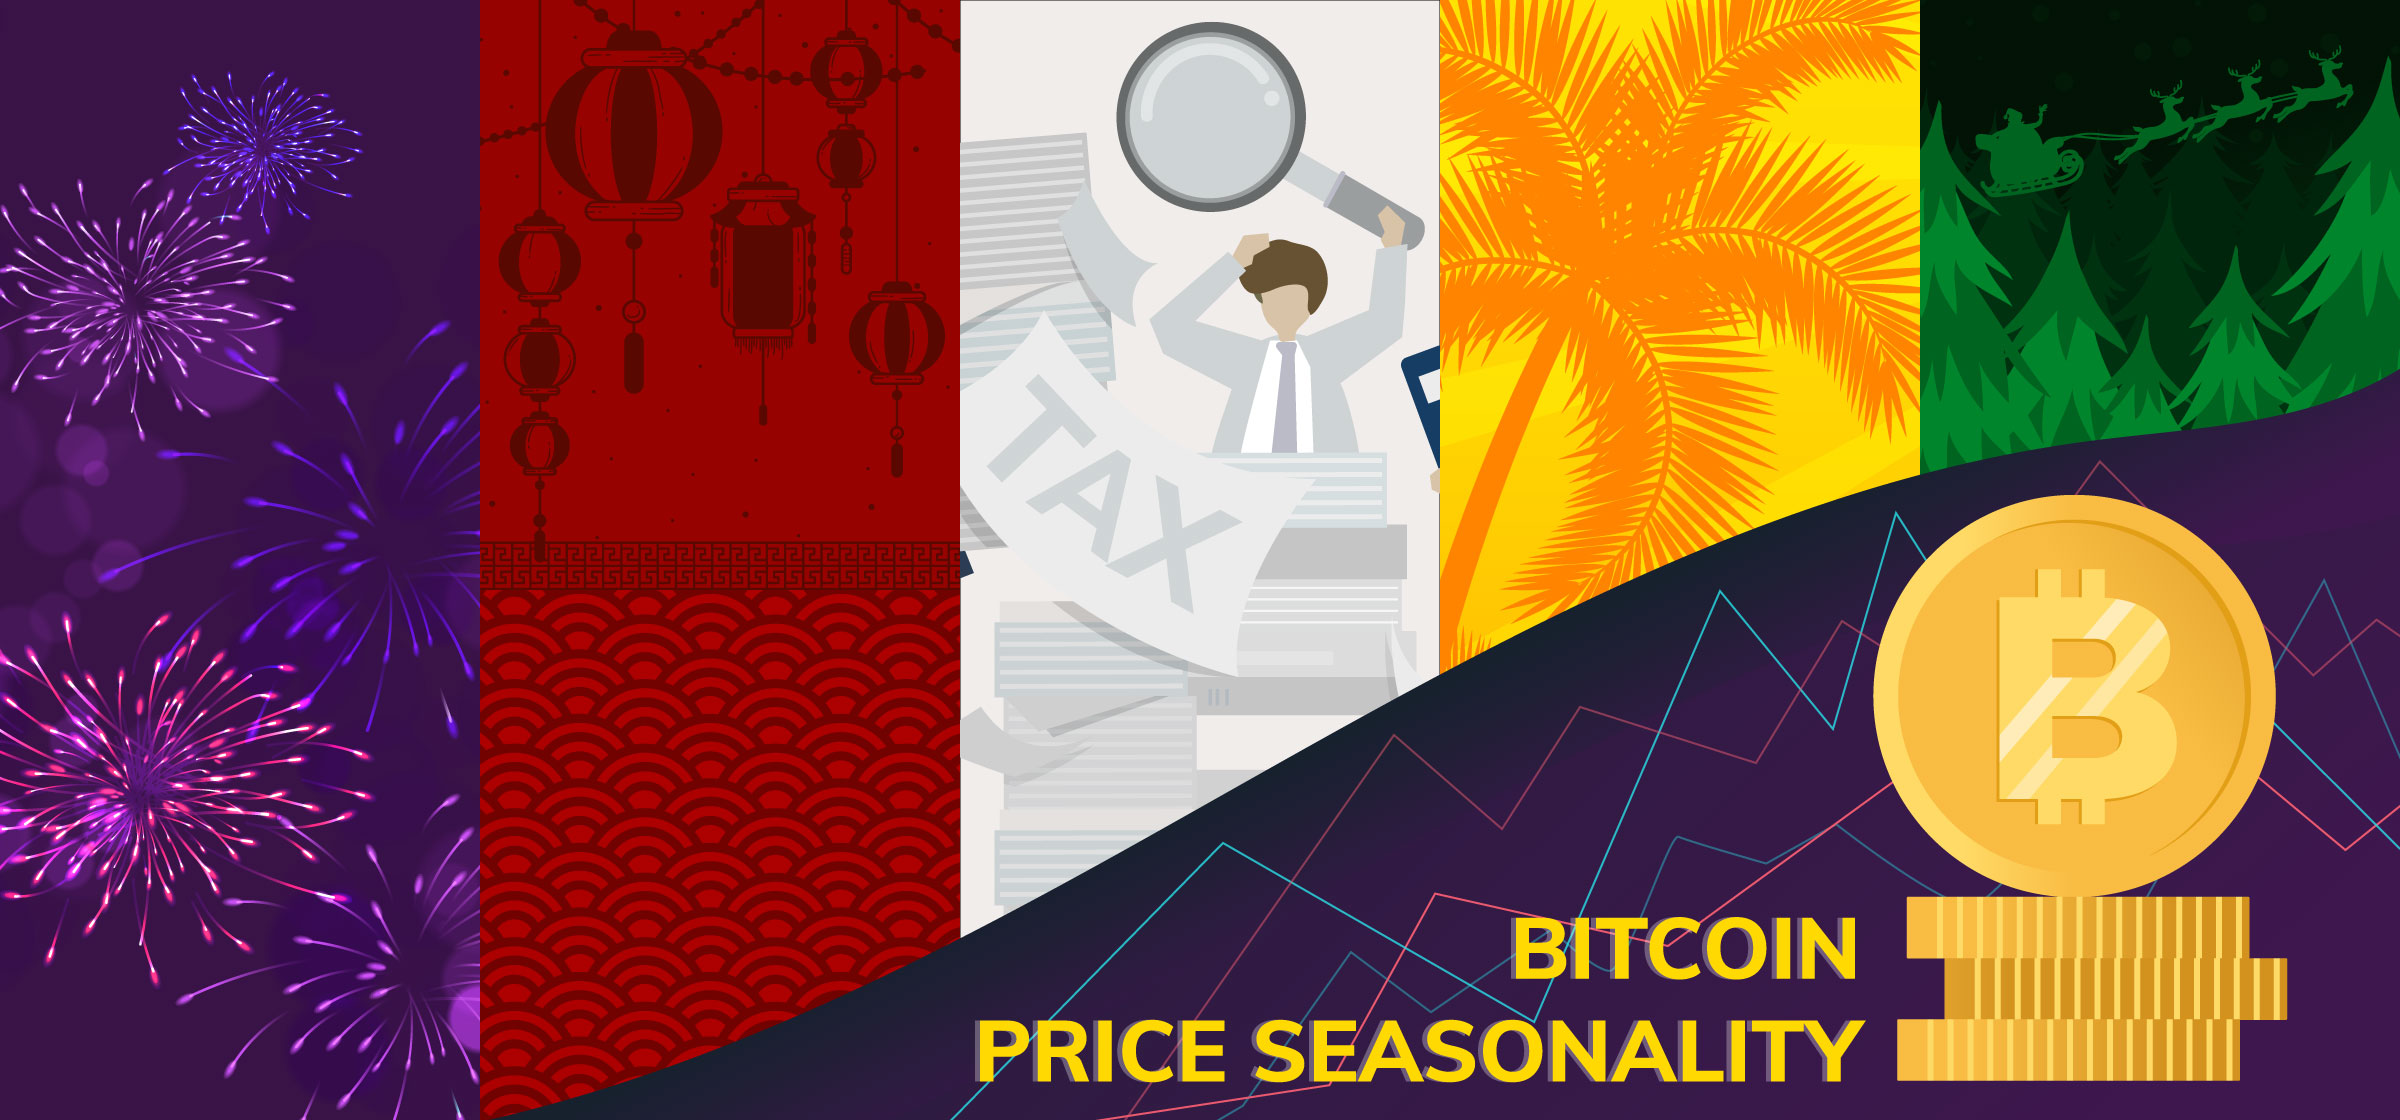 seasonality in bitcoin prices